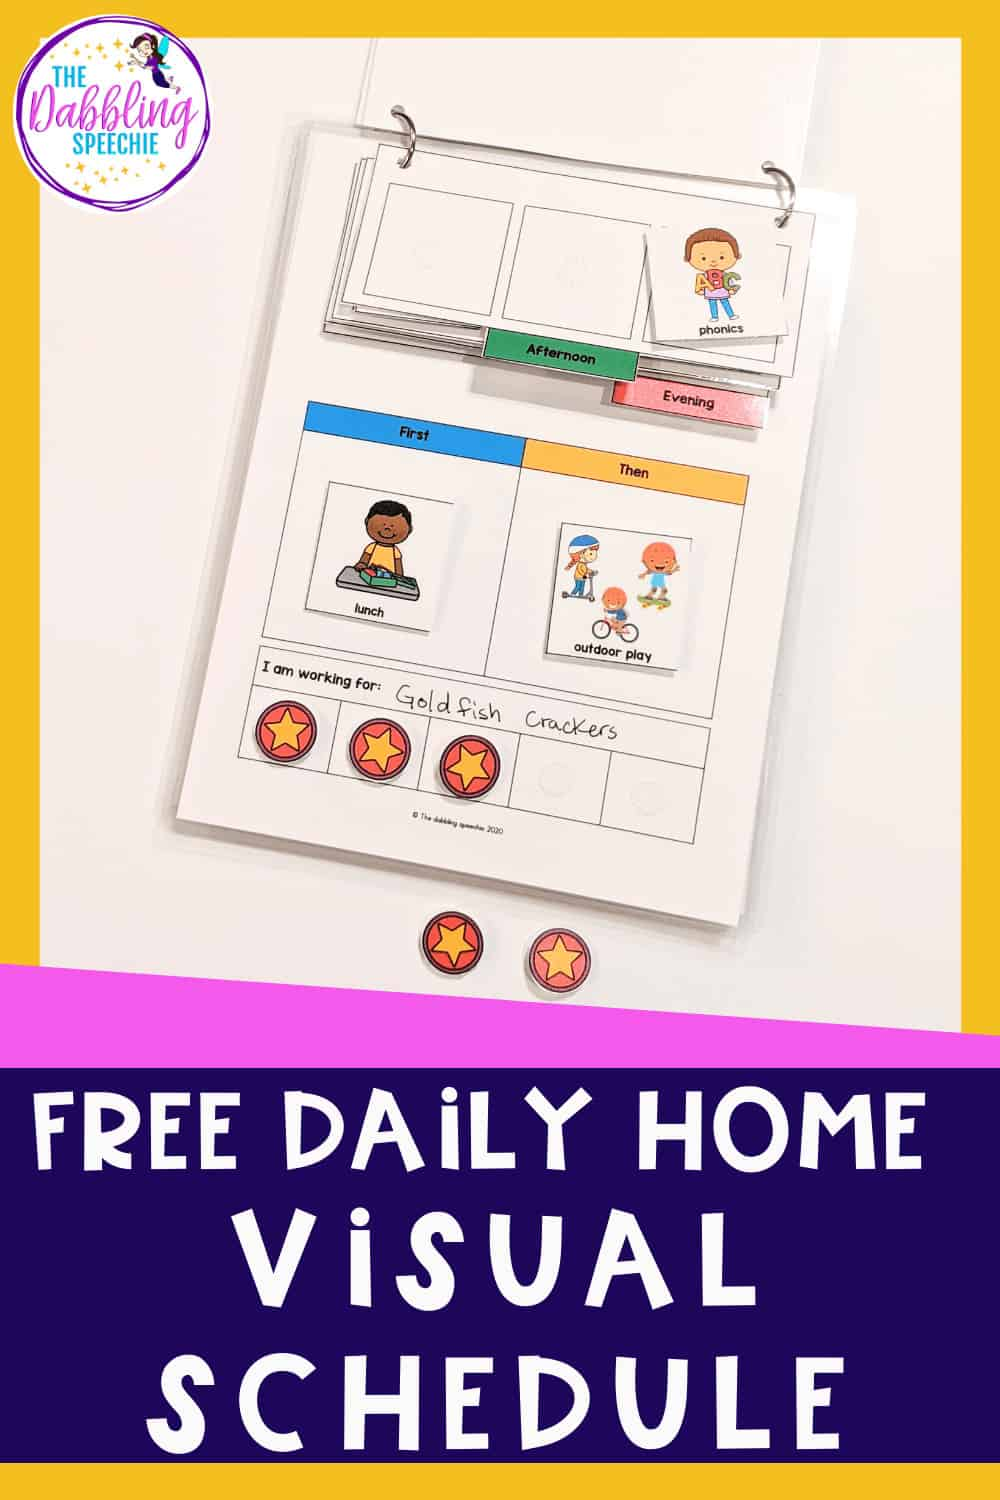 Need a daily home schedule for your child with Autism. Grab this free visual schedule to help your child navigate the day with ease!